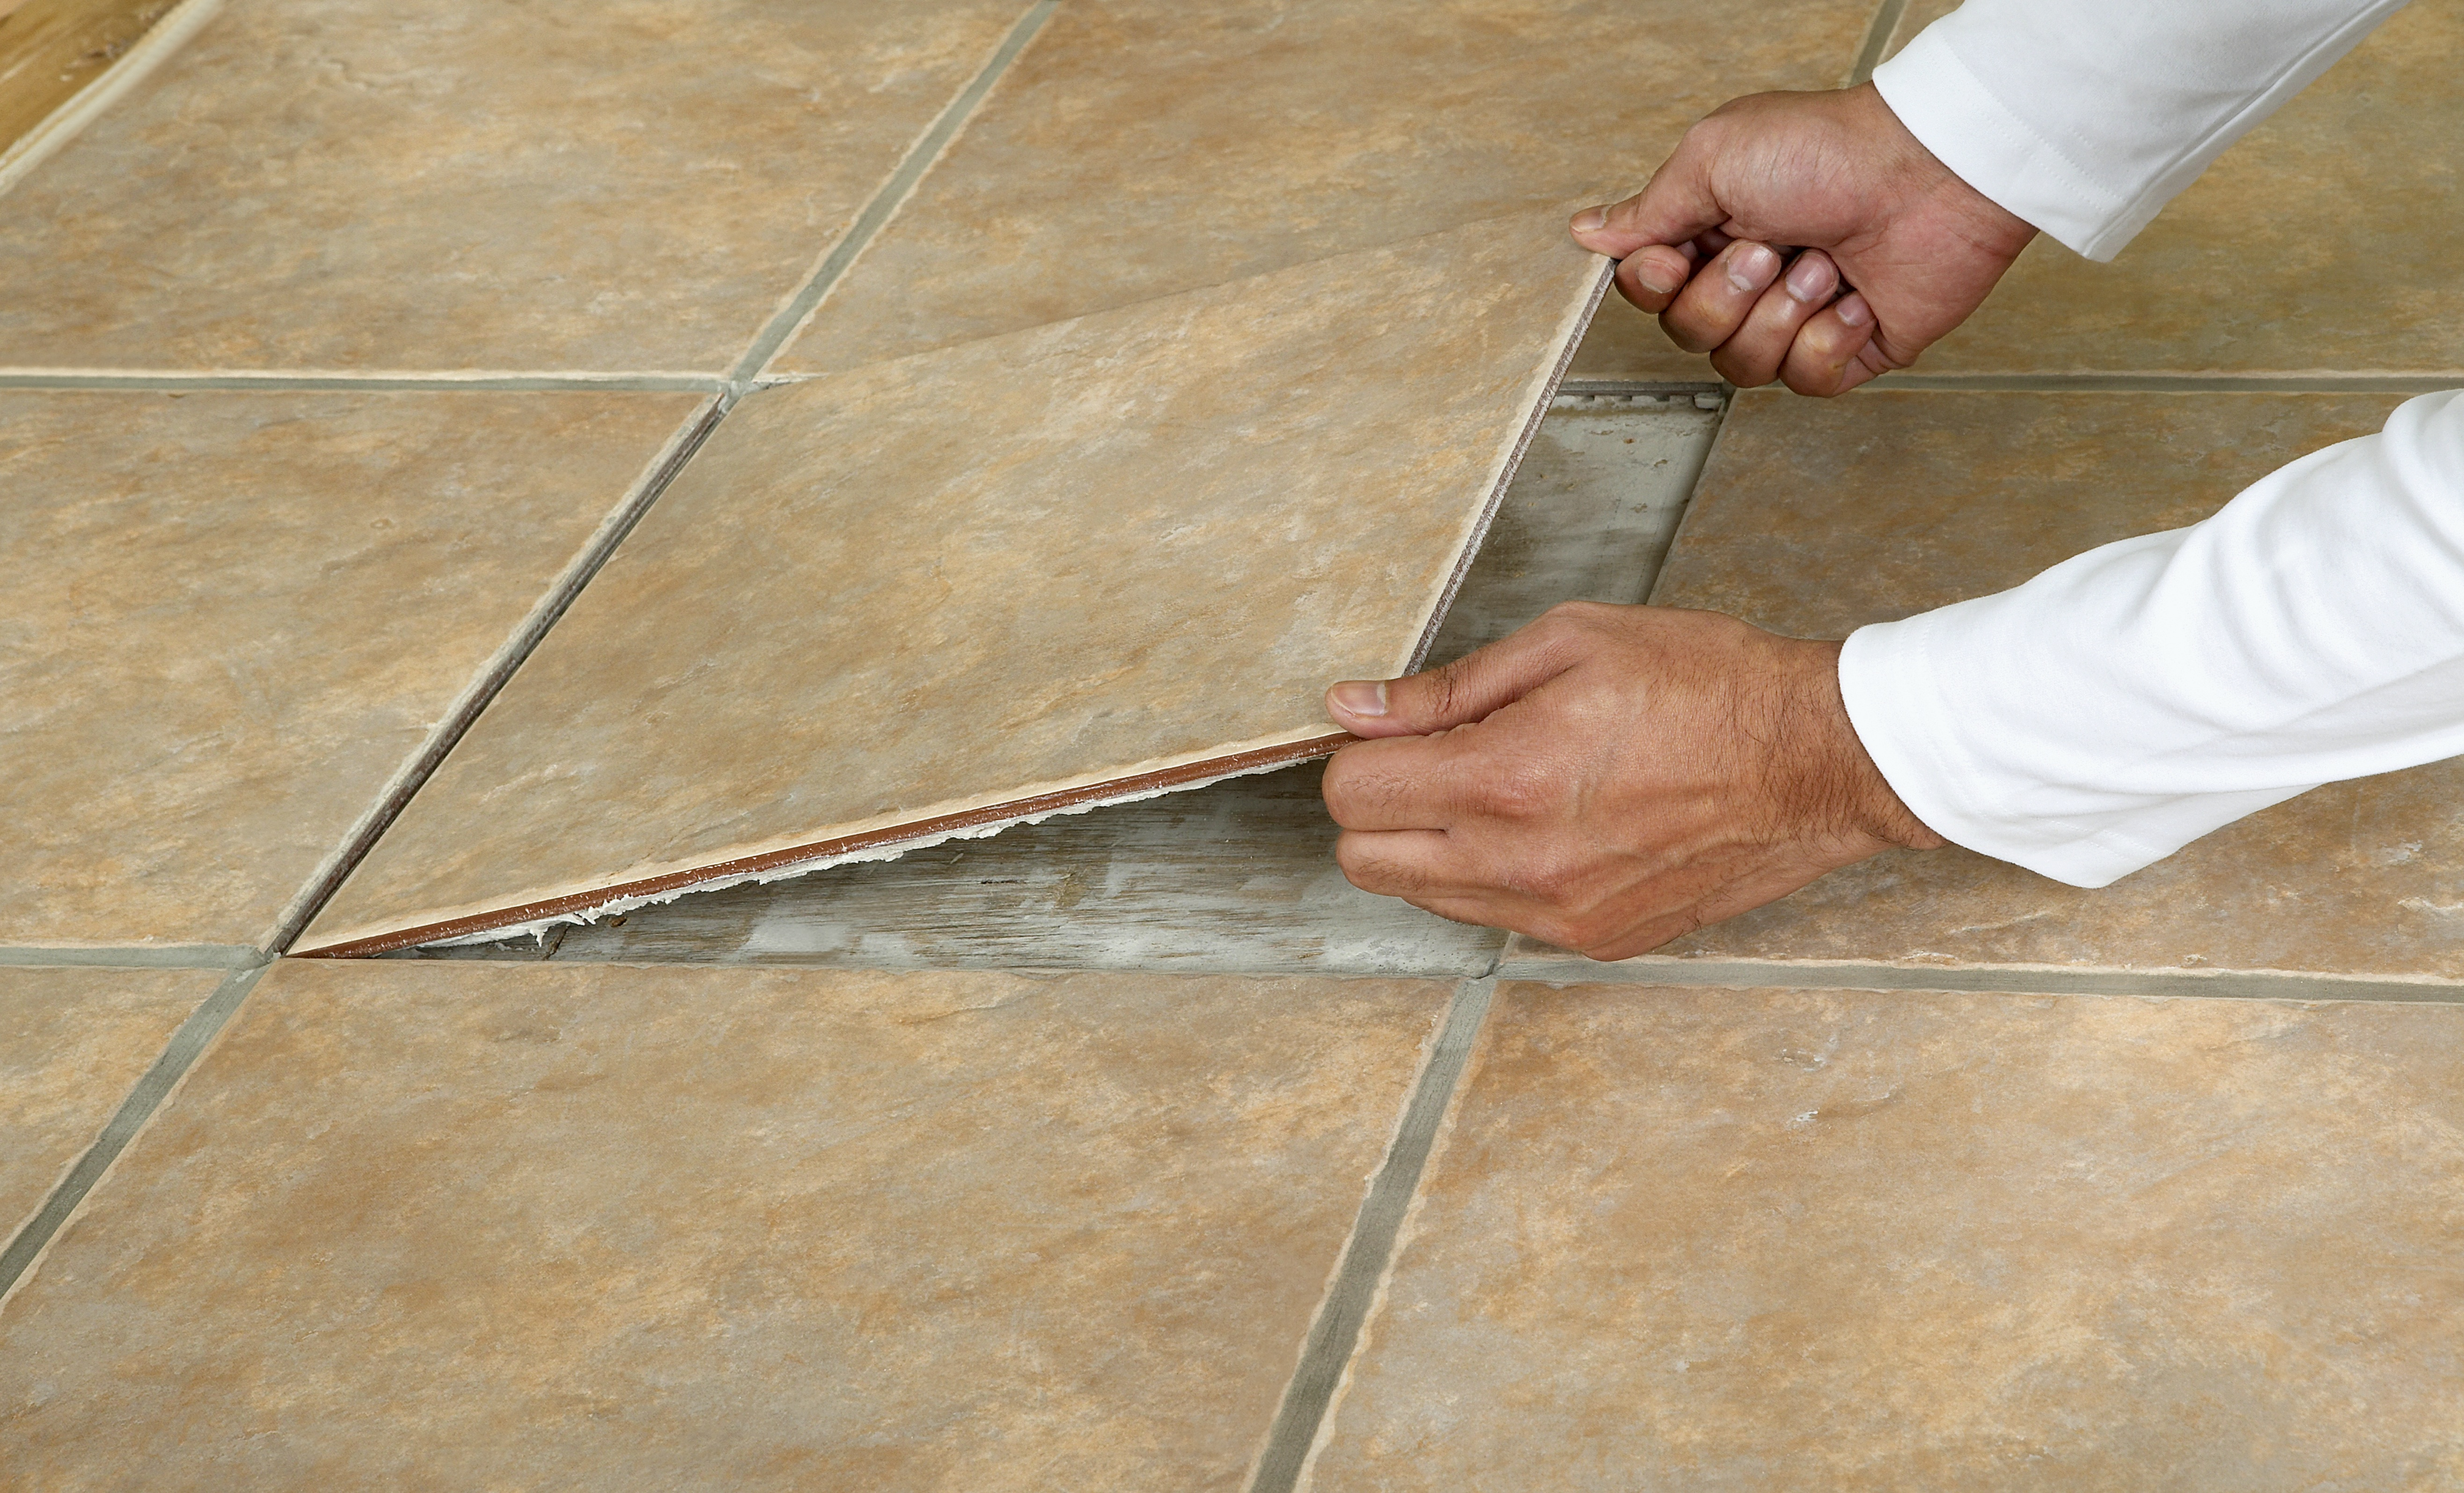 How Can A Private Homeowner Dispose Of Asbestos Floor Tiles Hunker